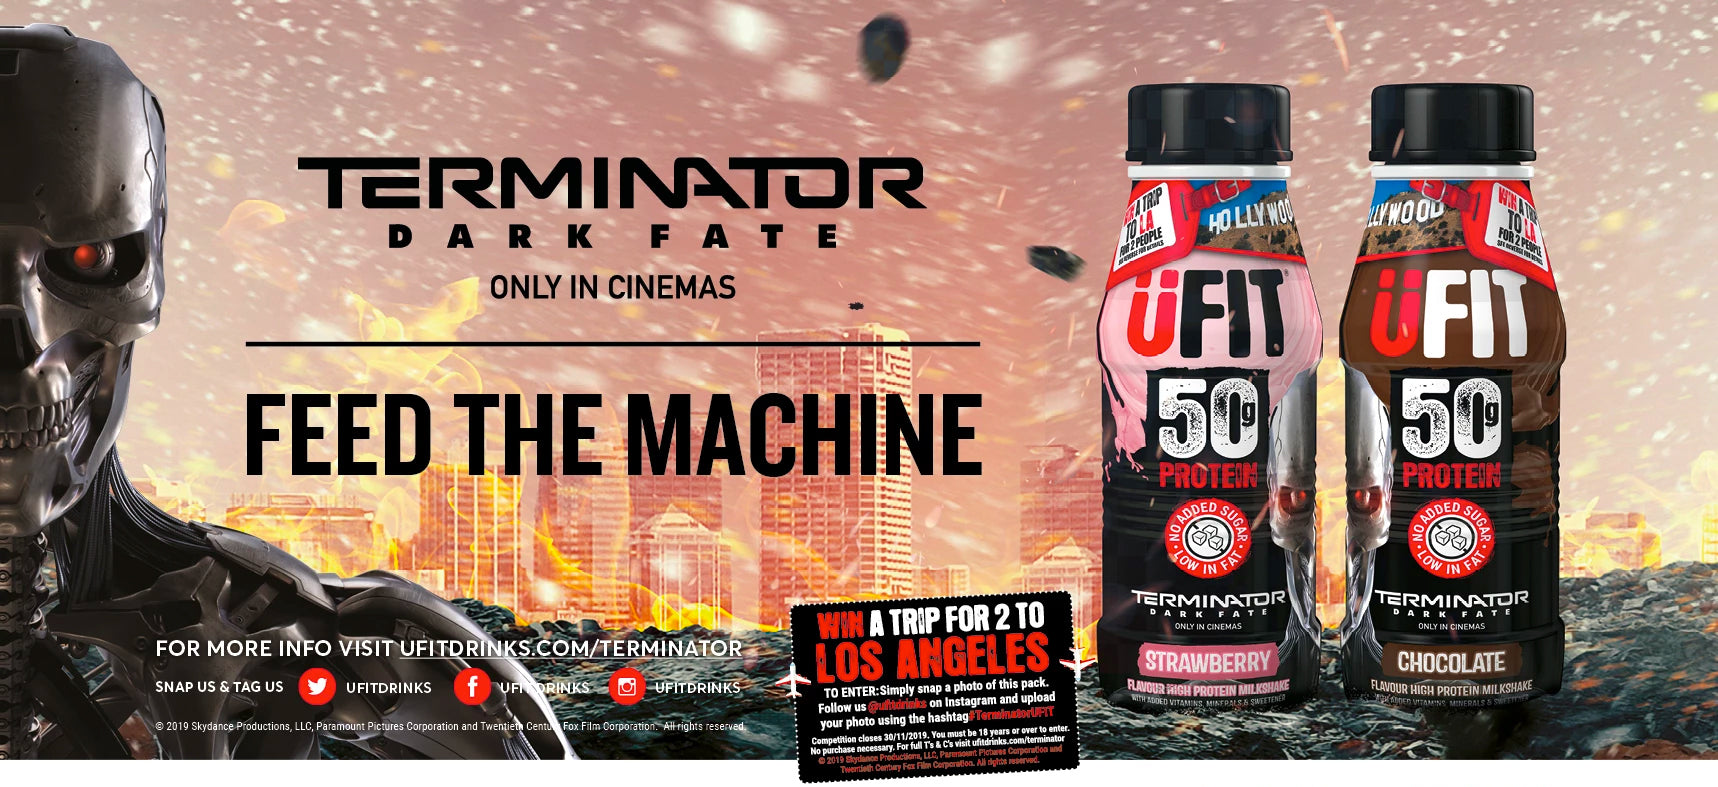 UFIT Terminator Competition